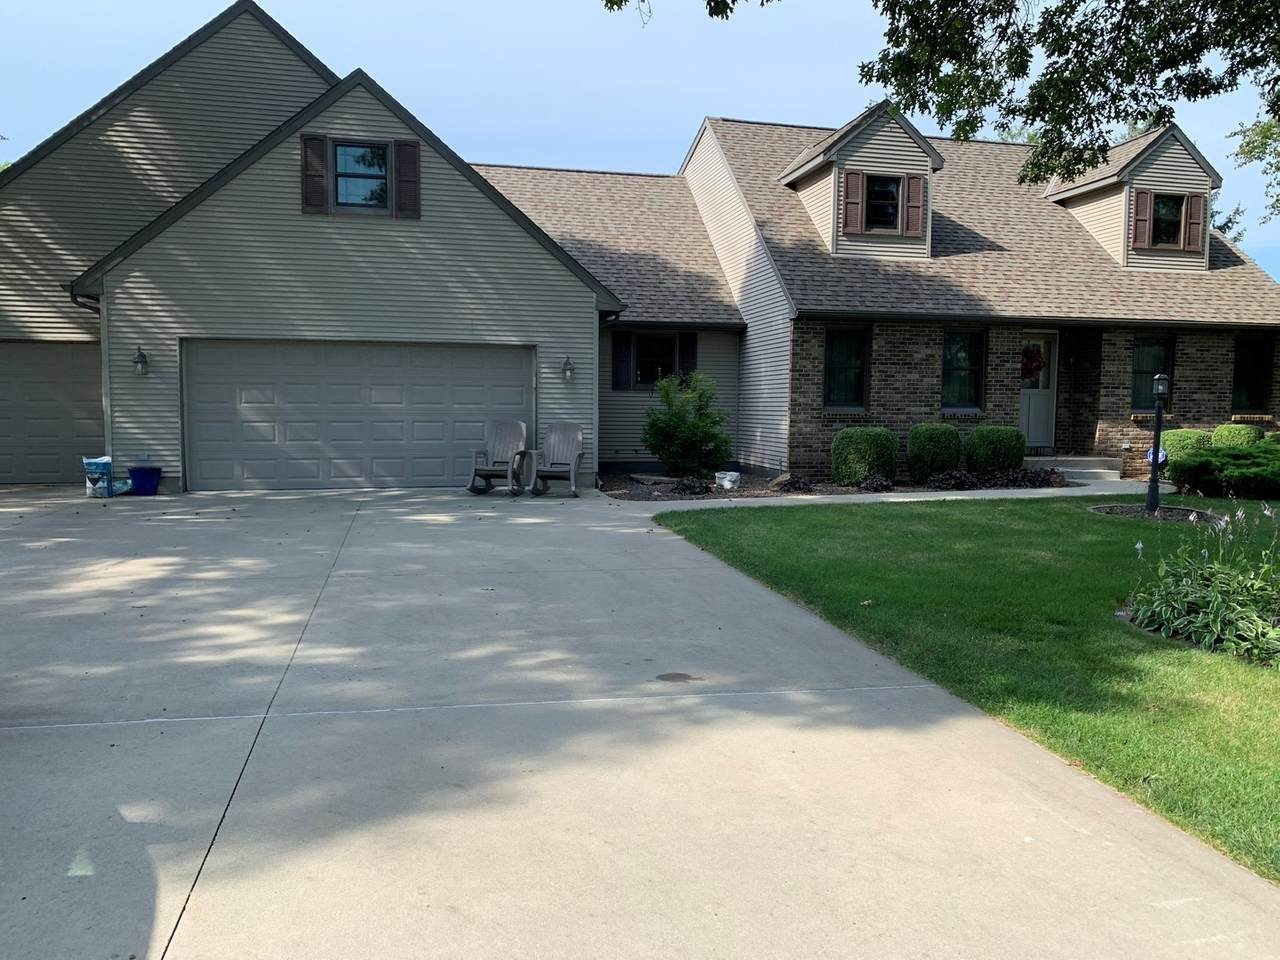 56 Carriage Hill Drive - Photo 1